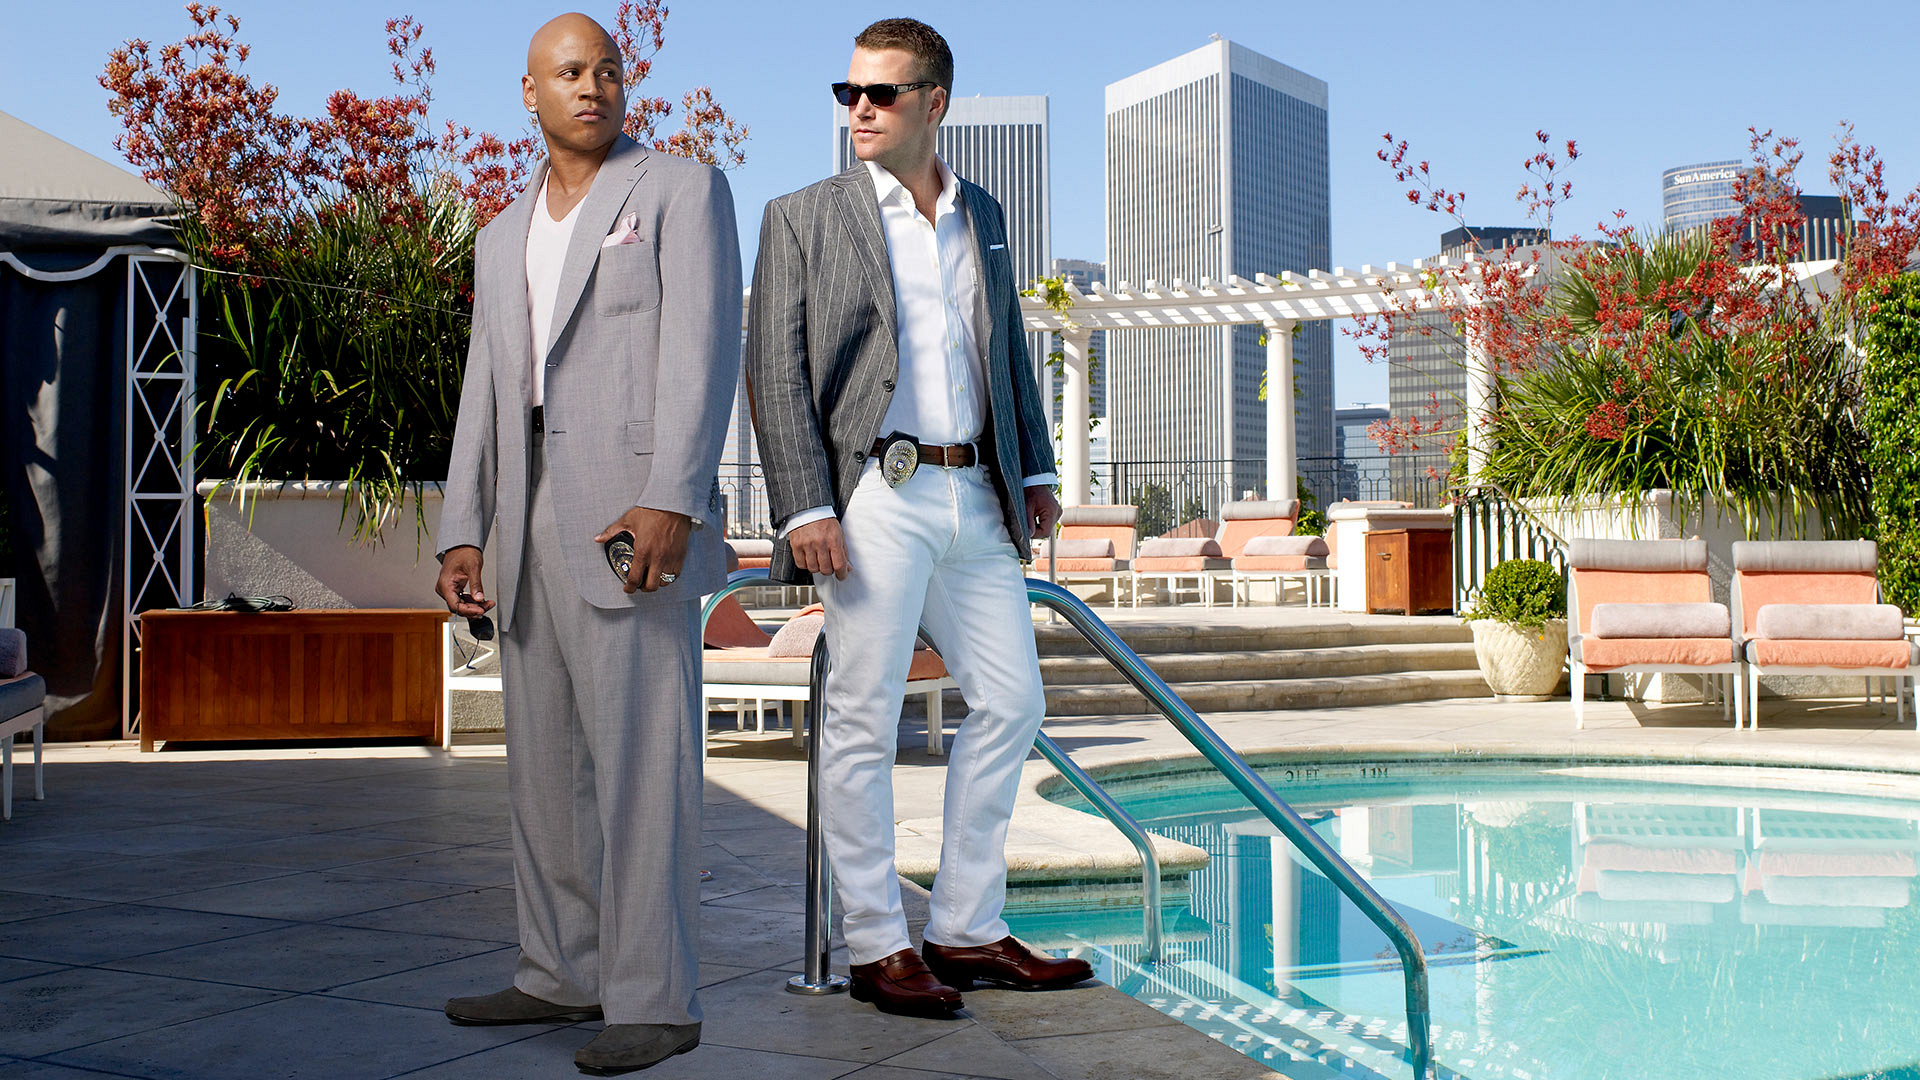 NCIS: Los Angeles detective duo LL COOL J and Chris O'Donnell are poolside chillin'.